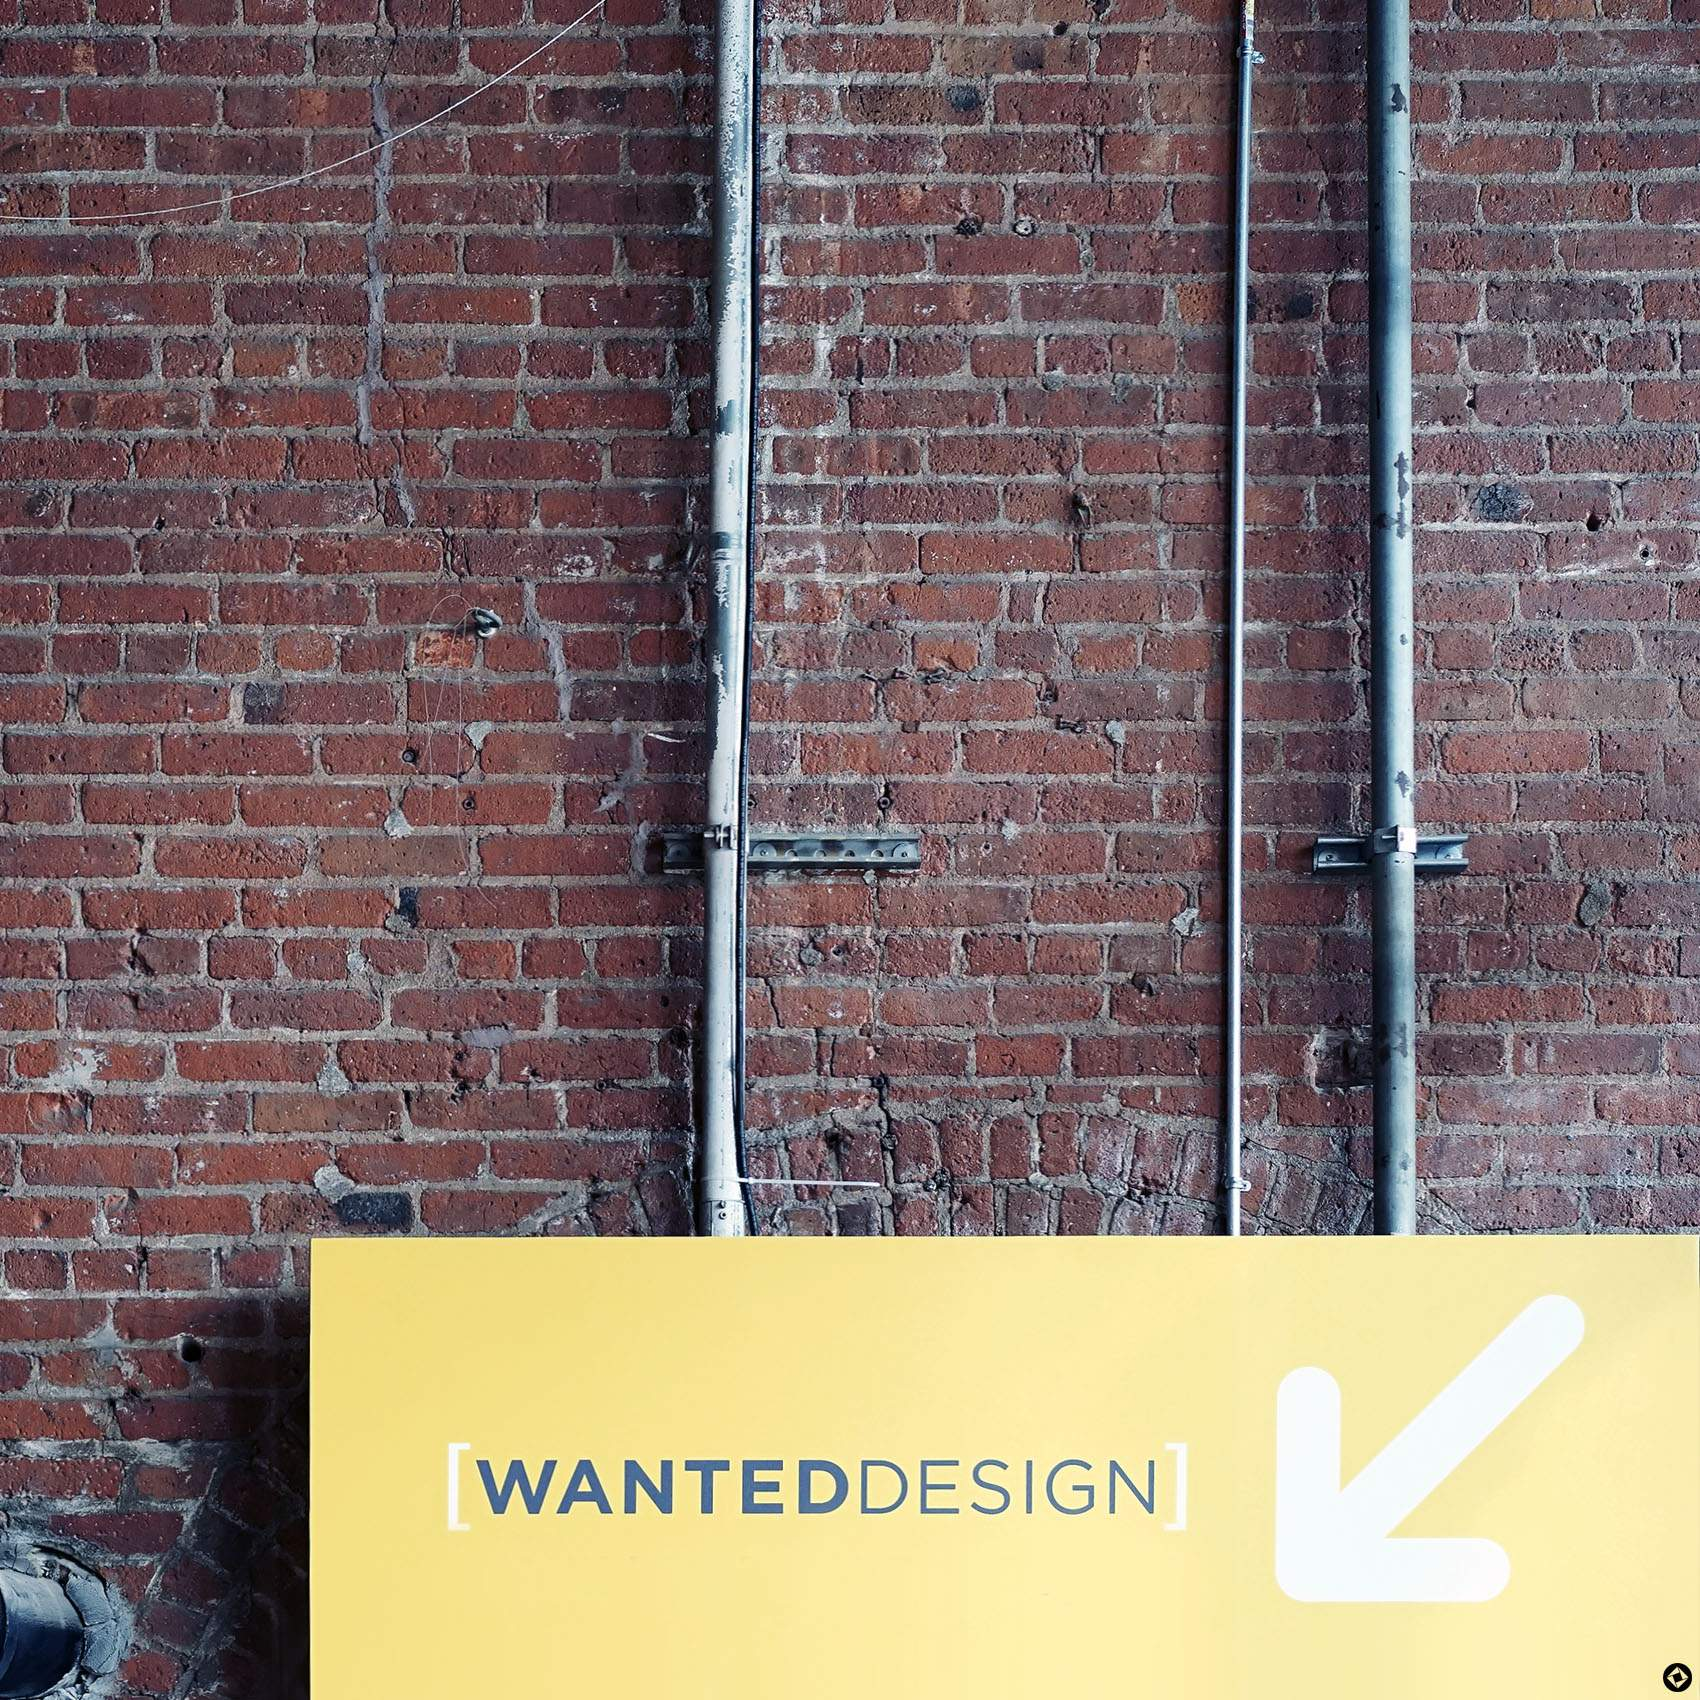 WANTED DESIGN NYC 2016